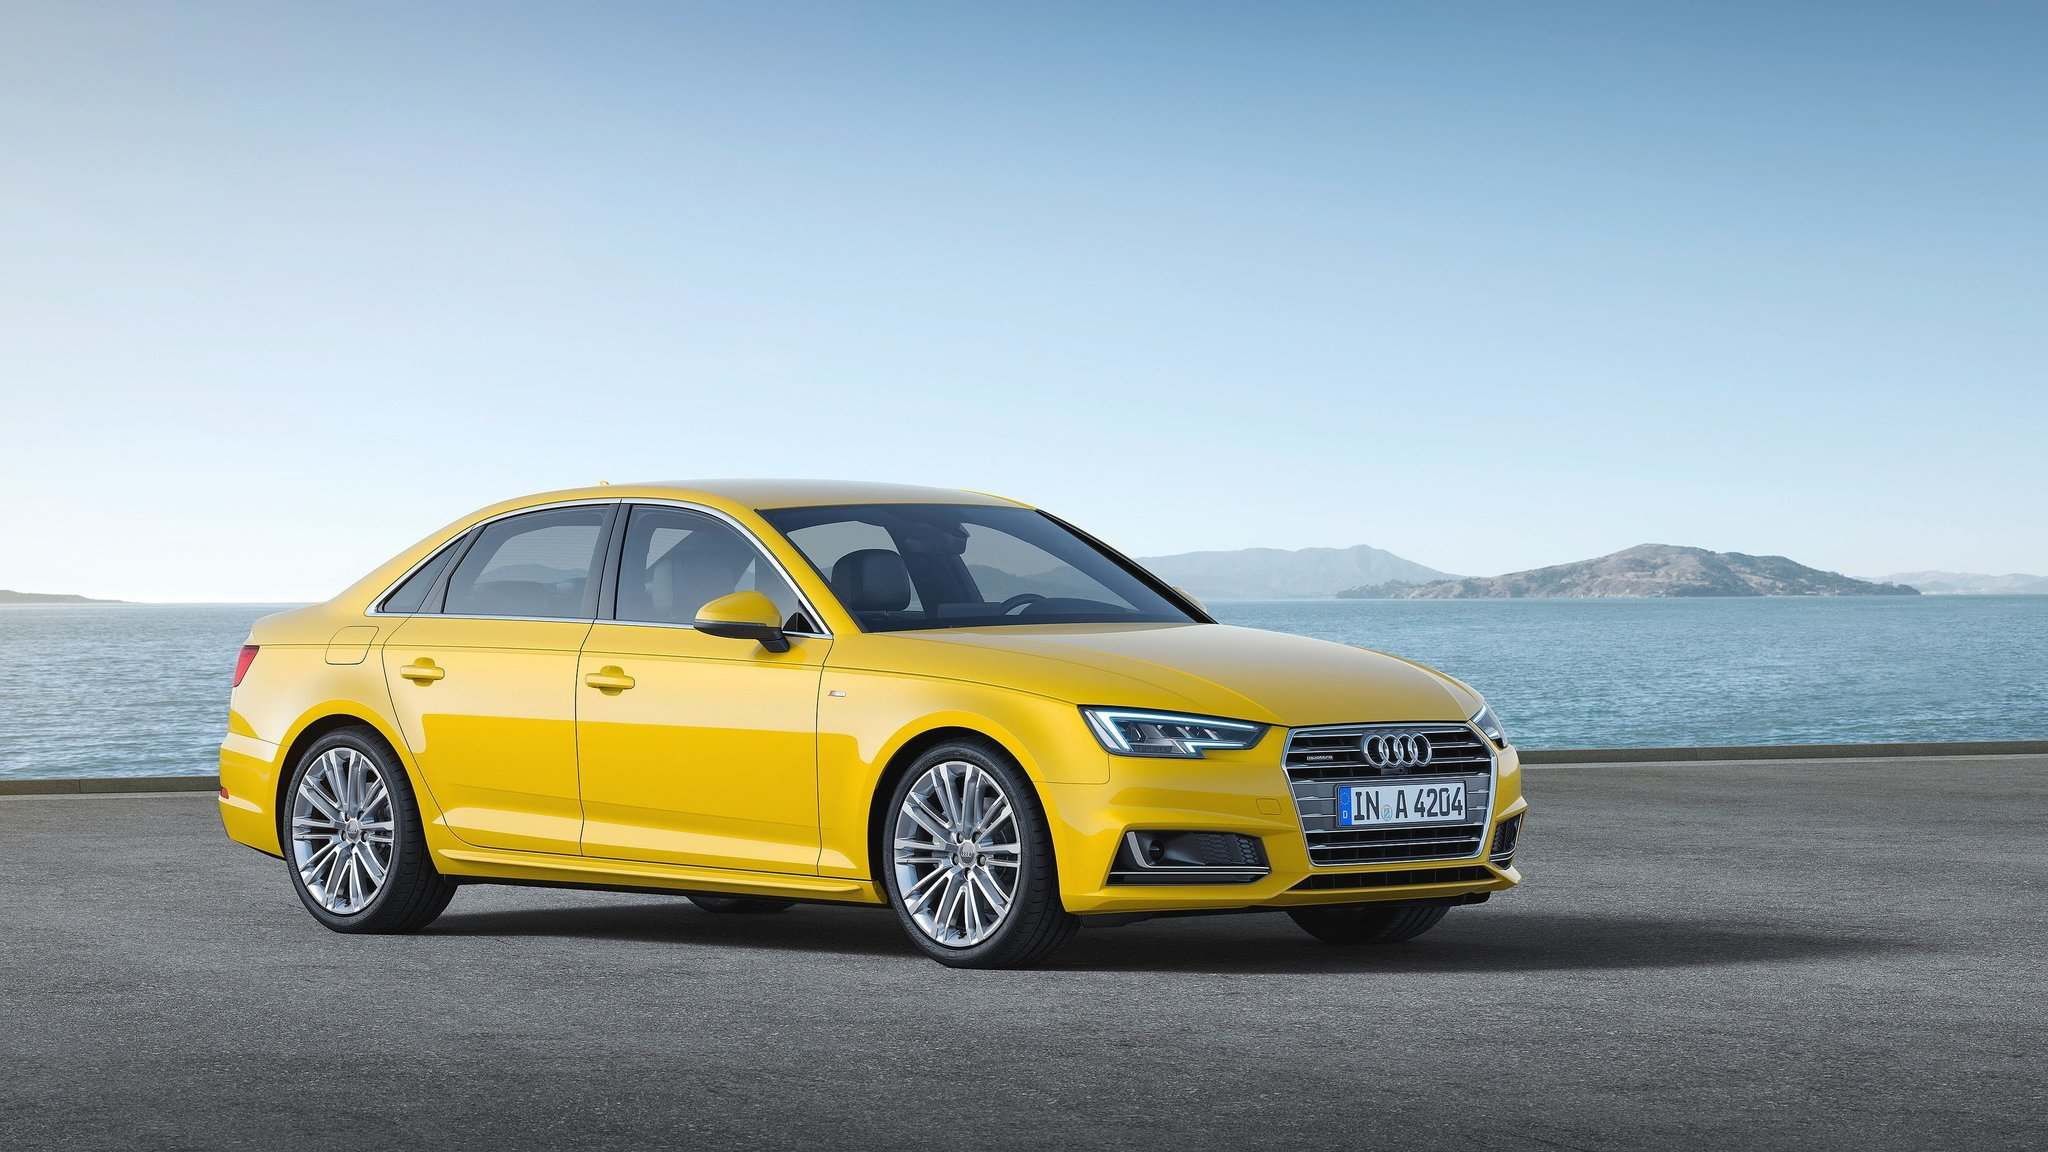 AUDIThe 2017 Audi A4 is available in a choice of three trims and has a starting price of about $46,000.